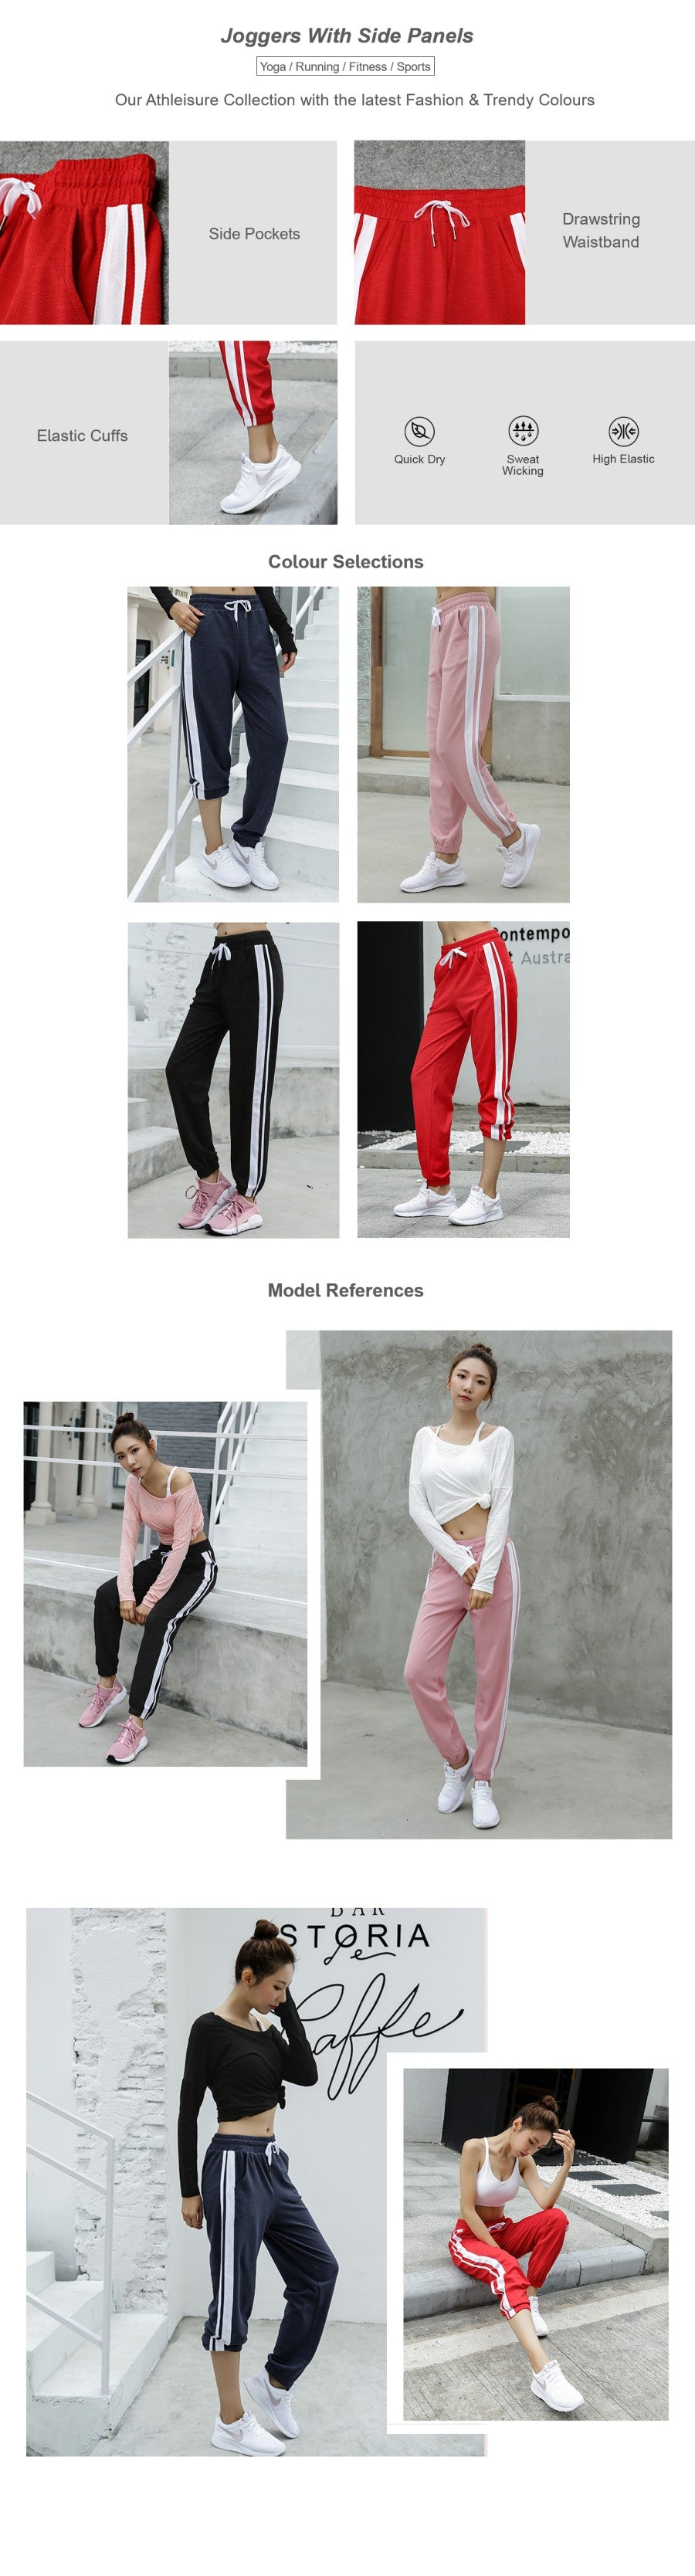 Joggers With Side Panels